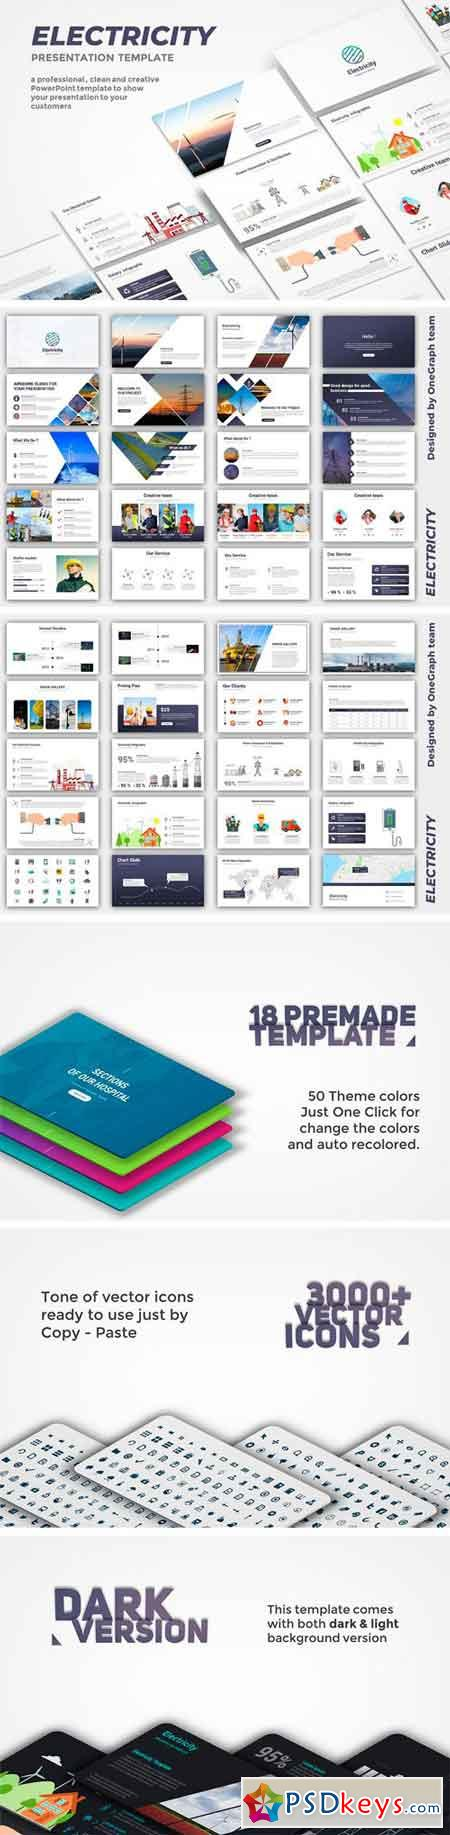 Electricity powerpoint template 2182170 free download photoshop electricity powerpoint template 2182170 toneelgroepblik Choice Image